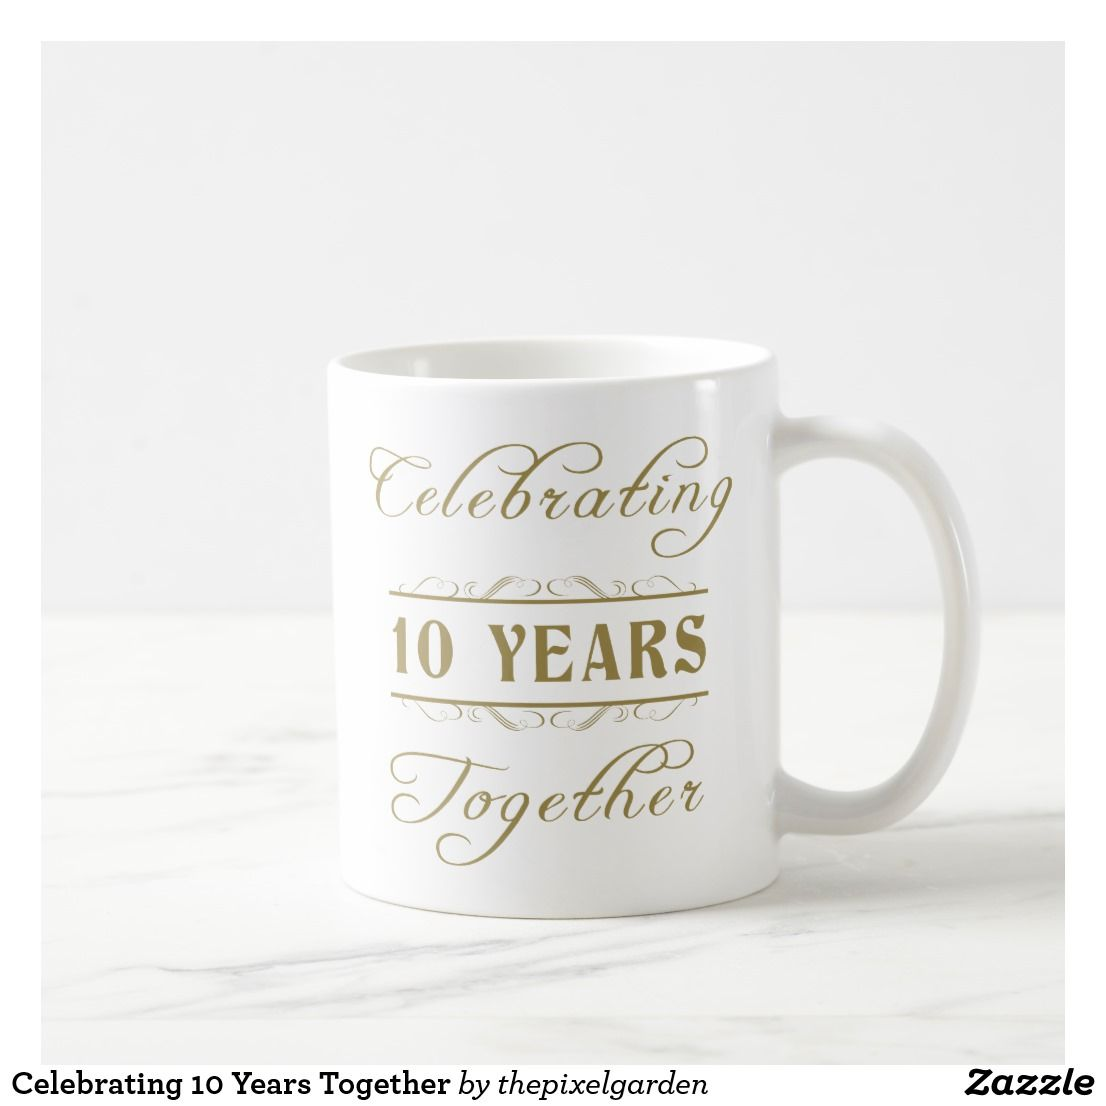 32e6d8851 Celebrating 10 Years Together Coffee Mug. Celebrate a milestone wedding  anniversary with this beautiful design with elegant writing.